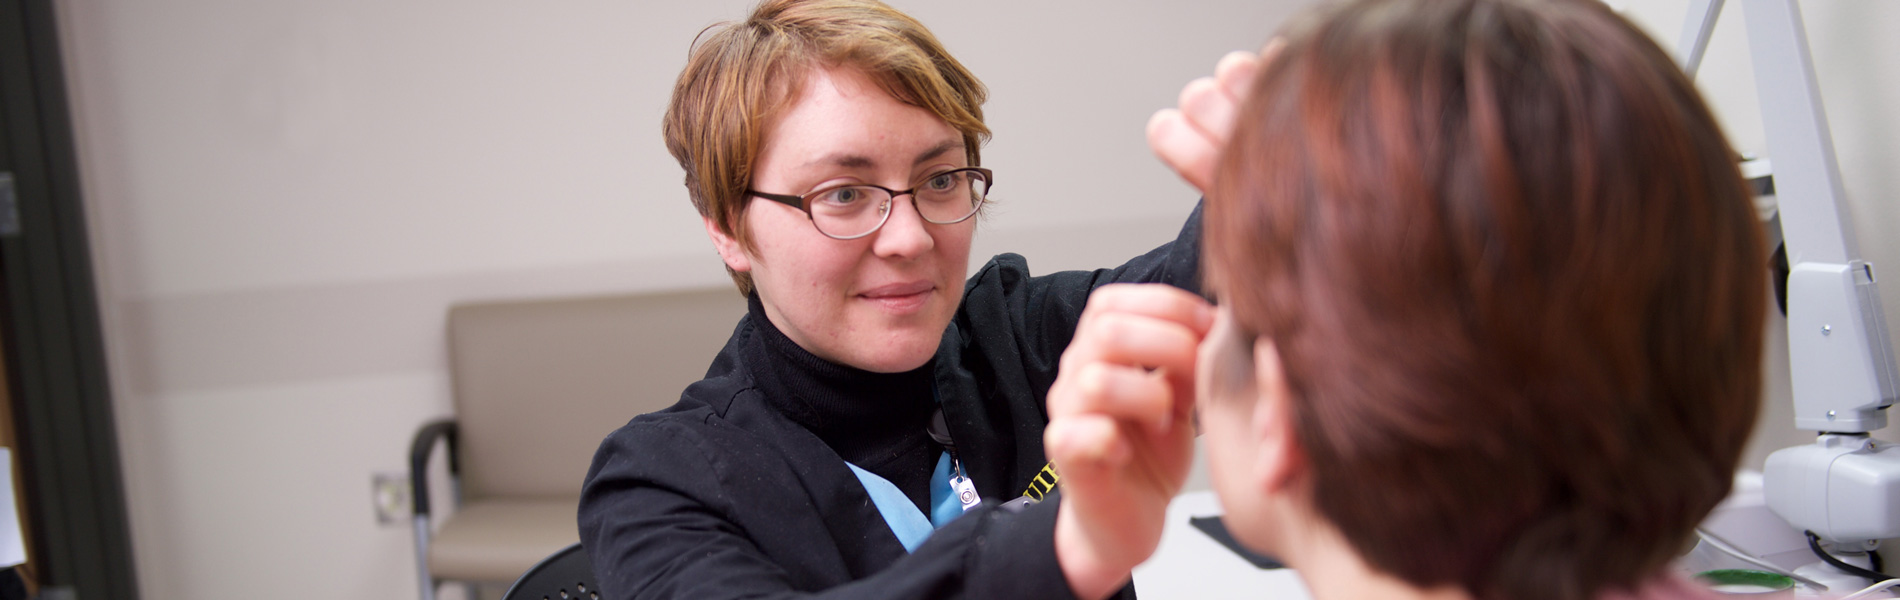 Lindsay Pronk, Ocularist, fitting a prosthetic eye